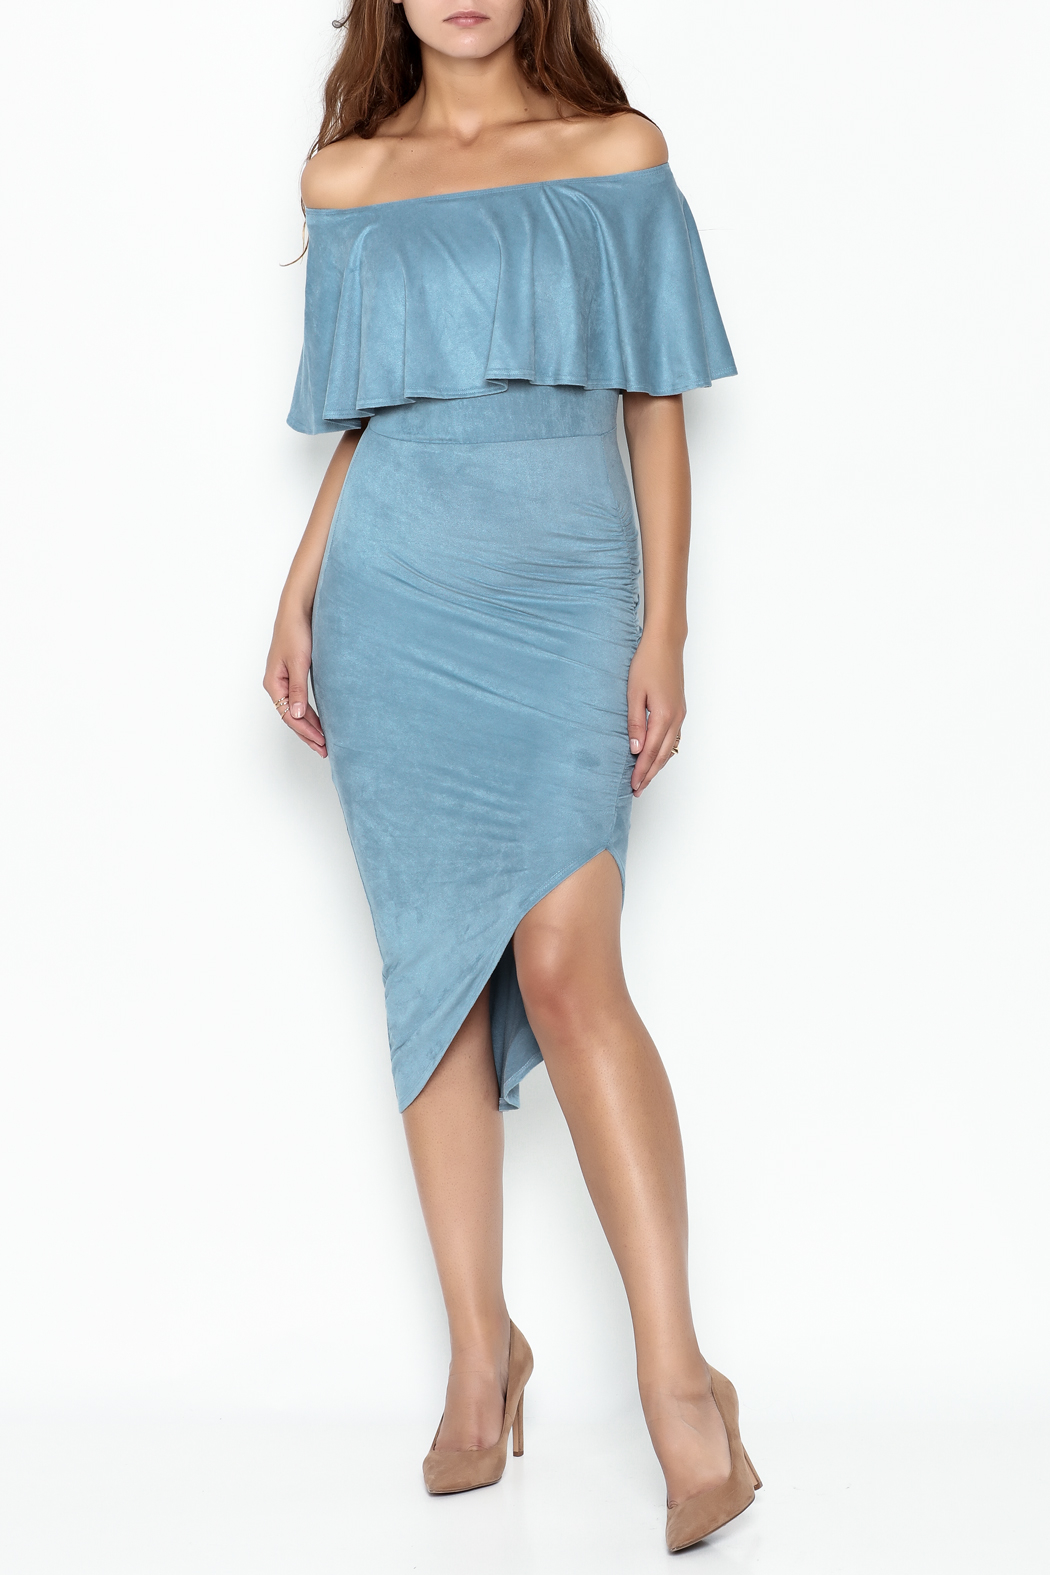 MT&PT Light Blue Suede Dress from Michigan by Javahs Fashion Cafe ...